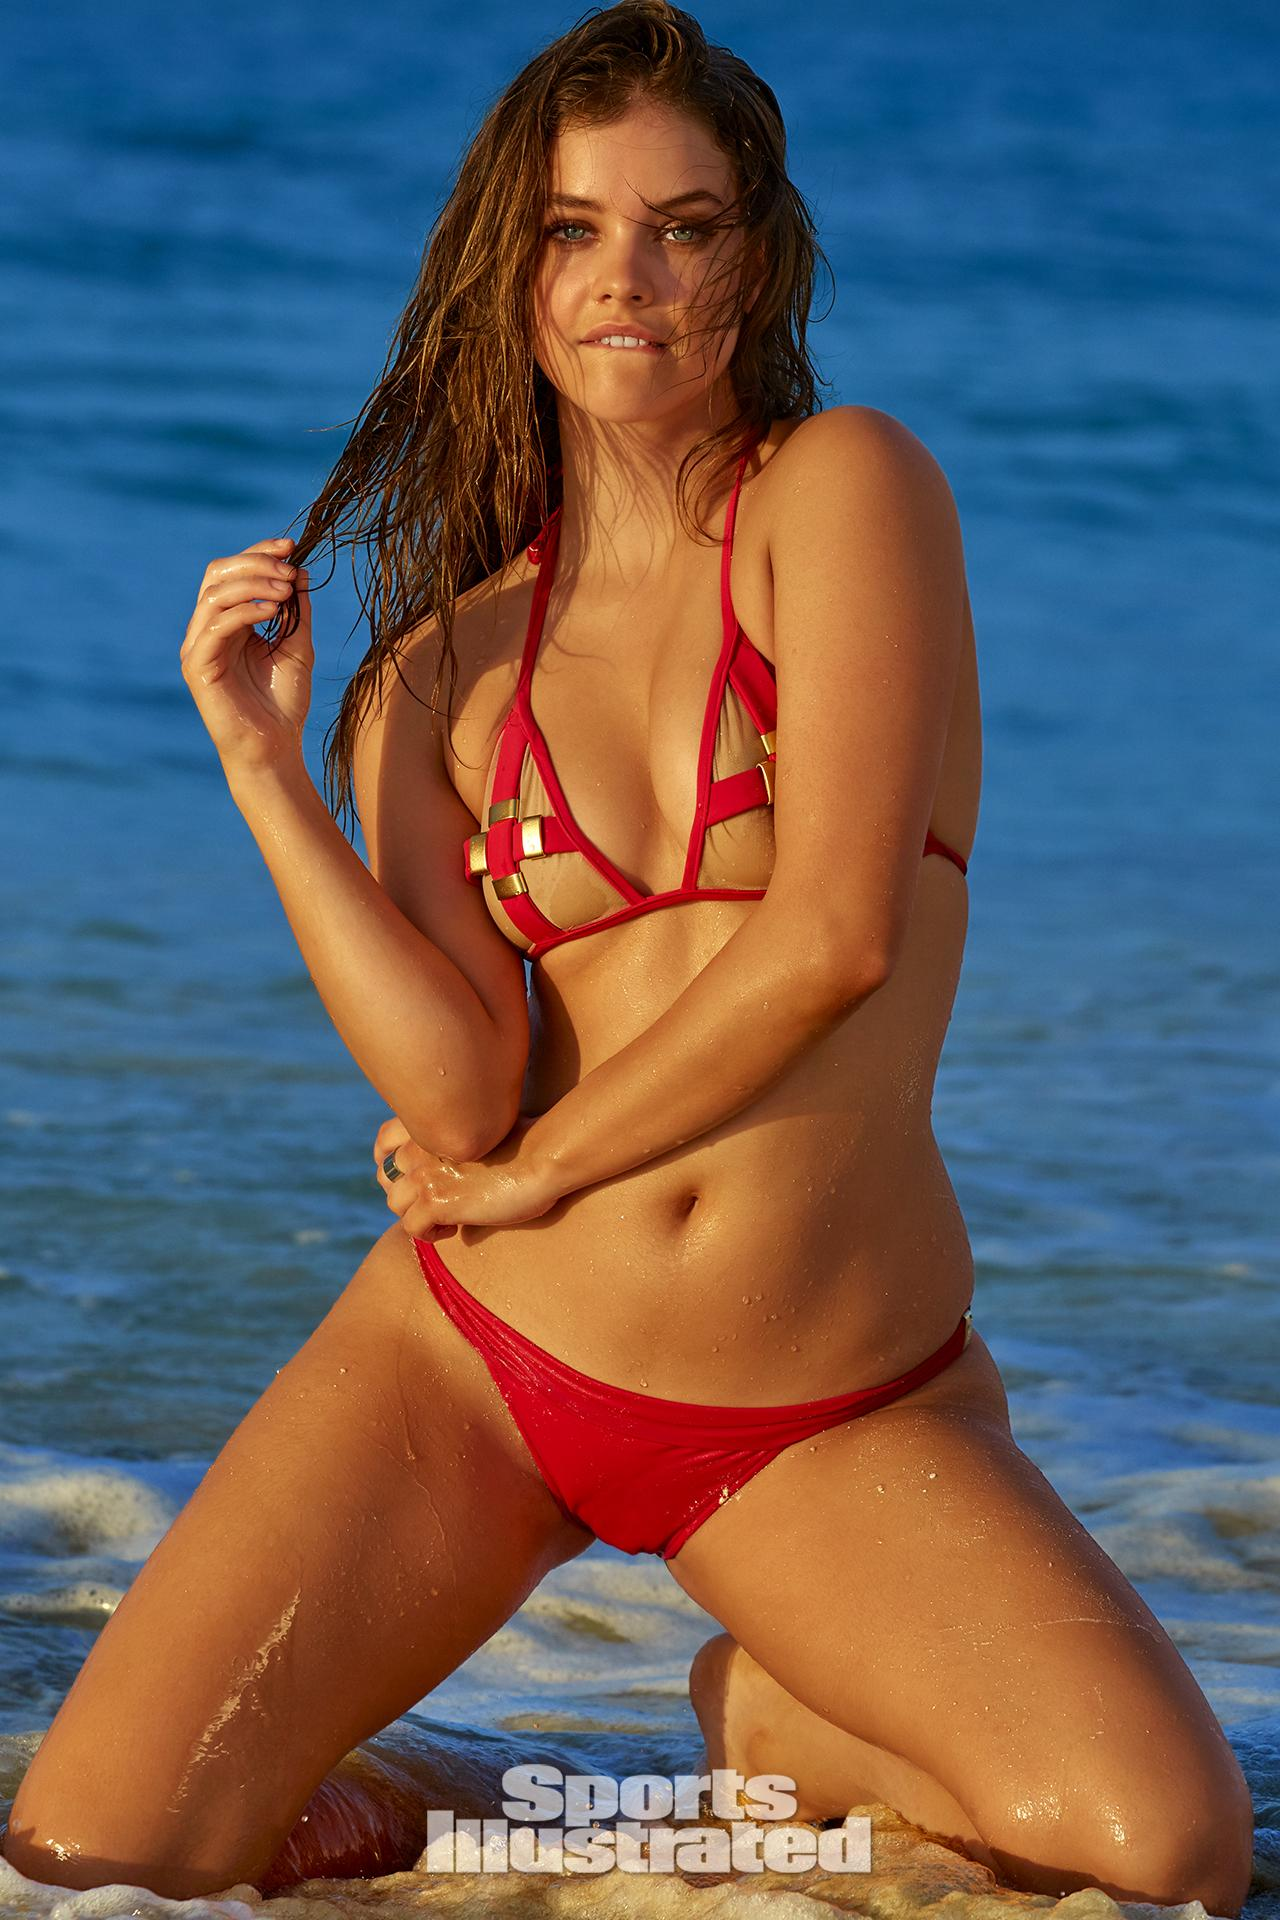 Barbara Palvin was photographed by James Macari in Turks & Caicos. Swimsuit by Elizabeth Southwood For Sauvage Swimwear.